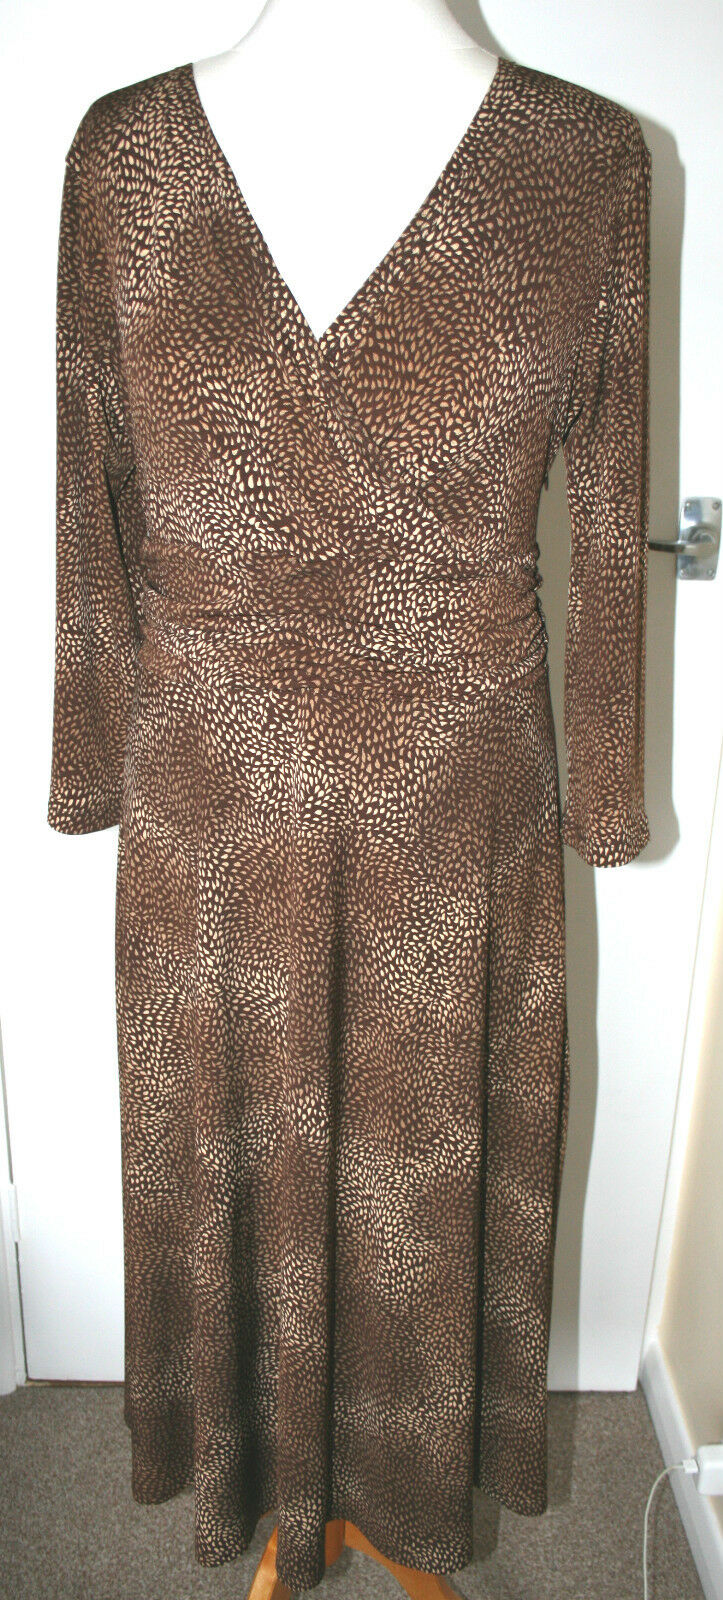 VIYELLA UK14 EU42 BROWN STRETCH JERSEY DRESS WITH 3 4 SLEEVES AND CredVER BUST